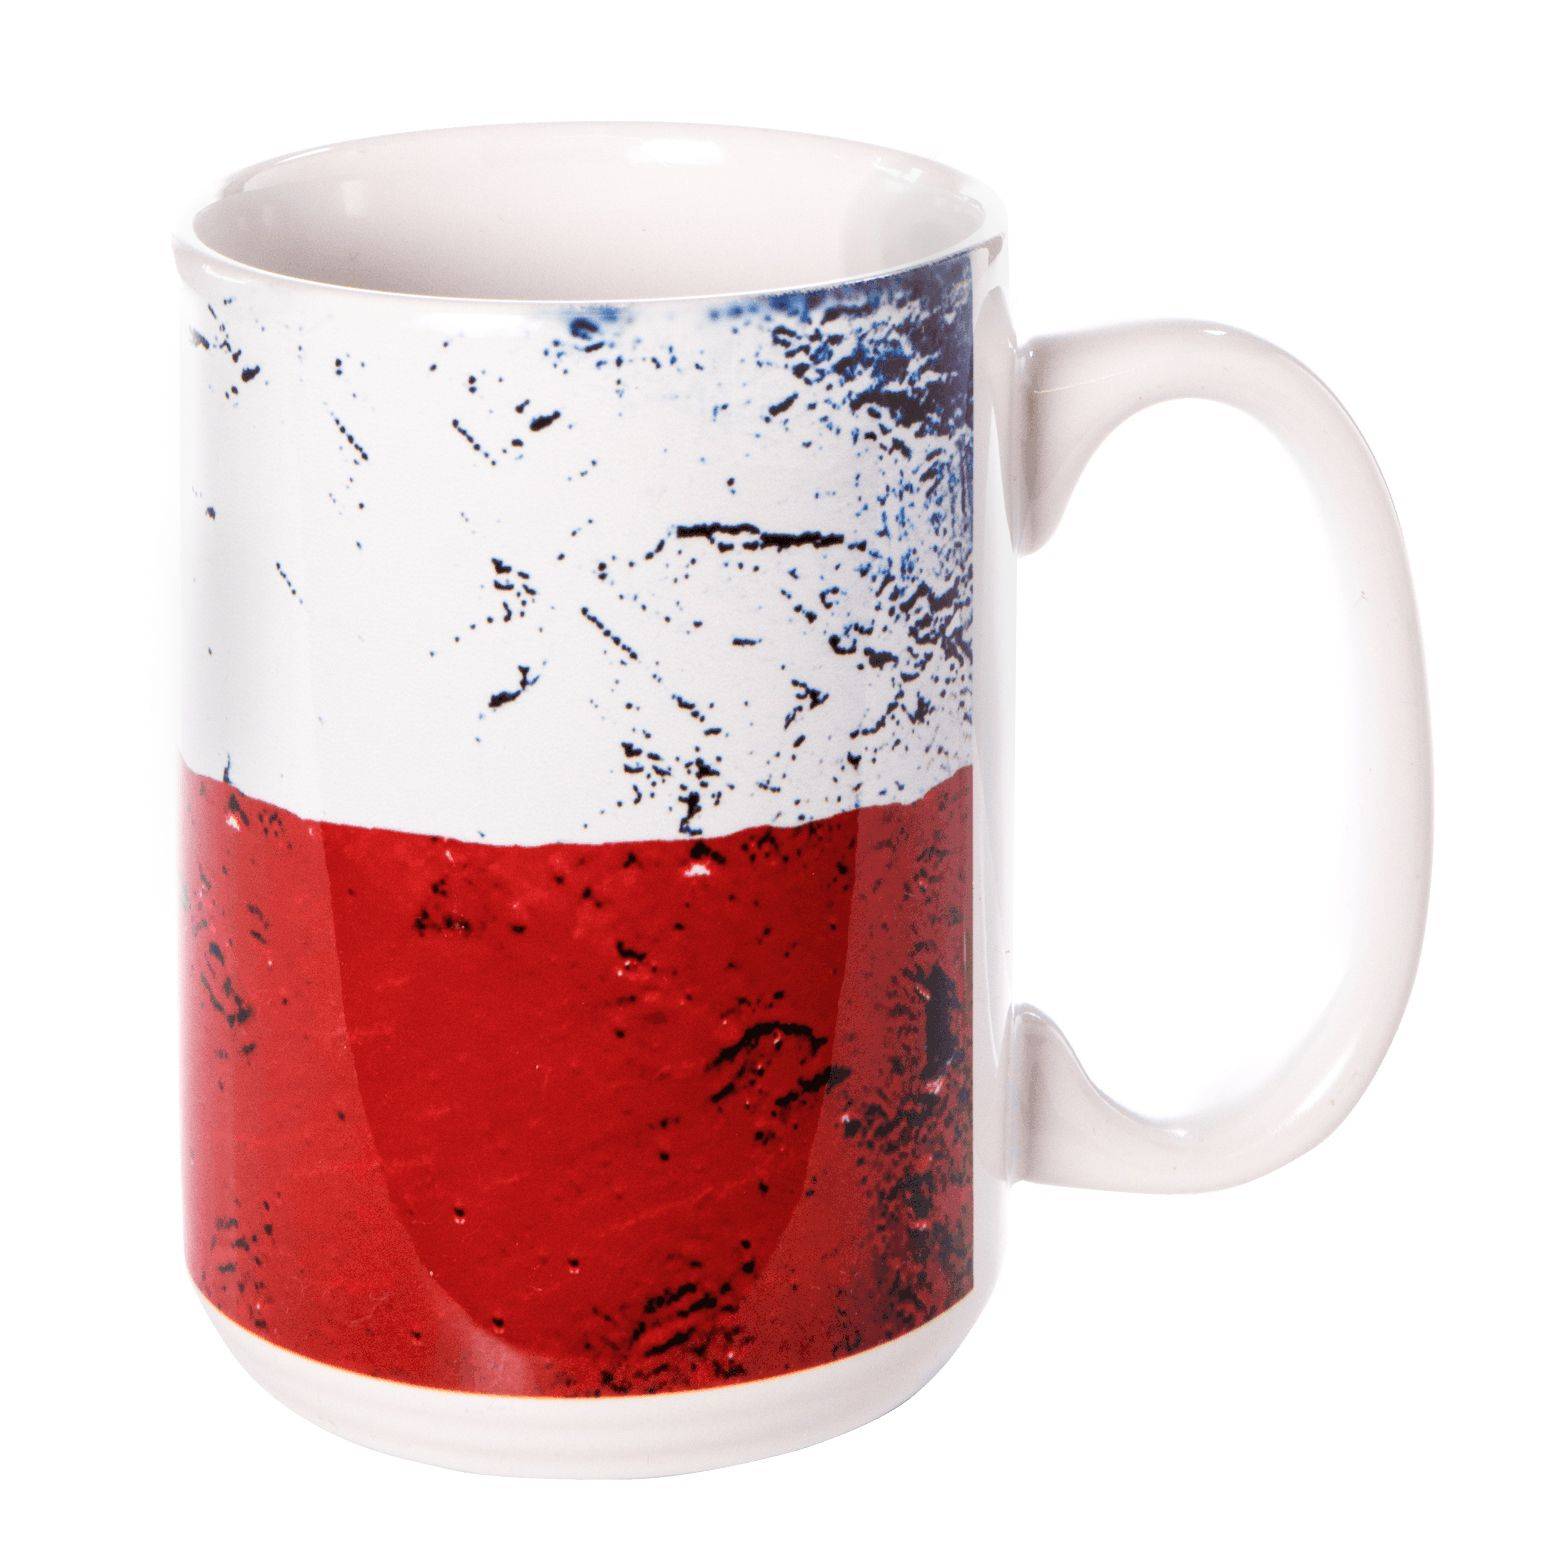 Texas State Flag Sponge-Painted Ceramic Mug